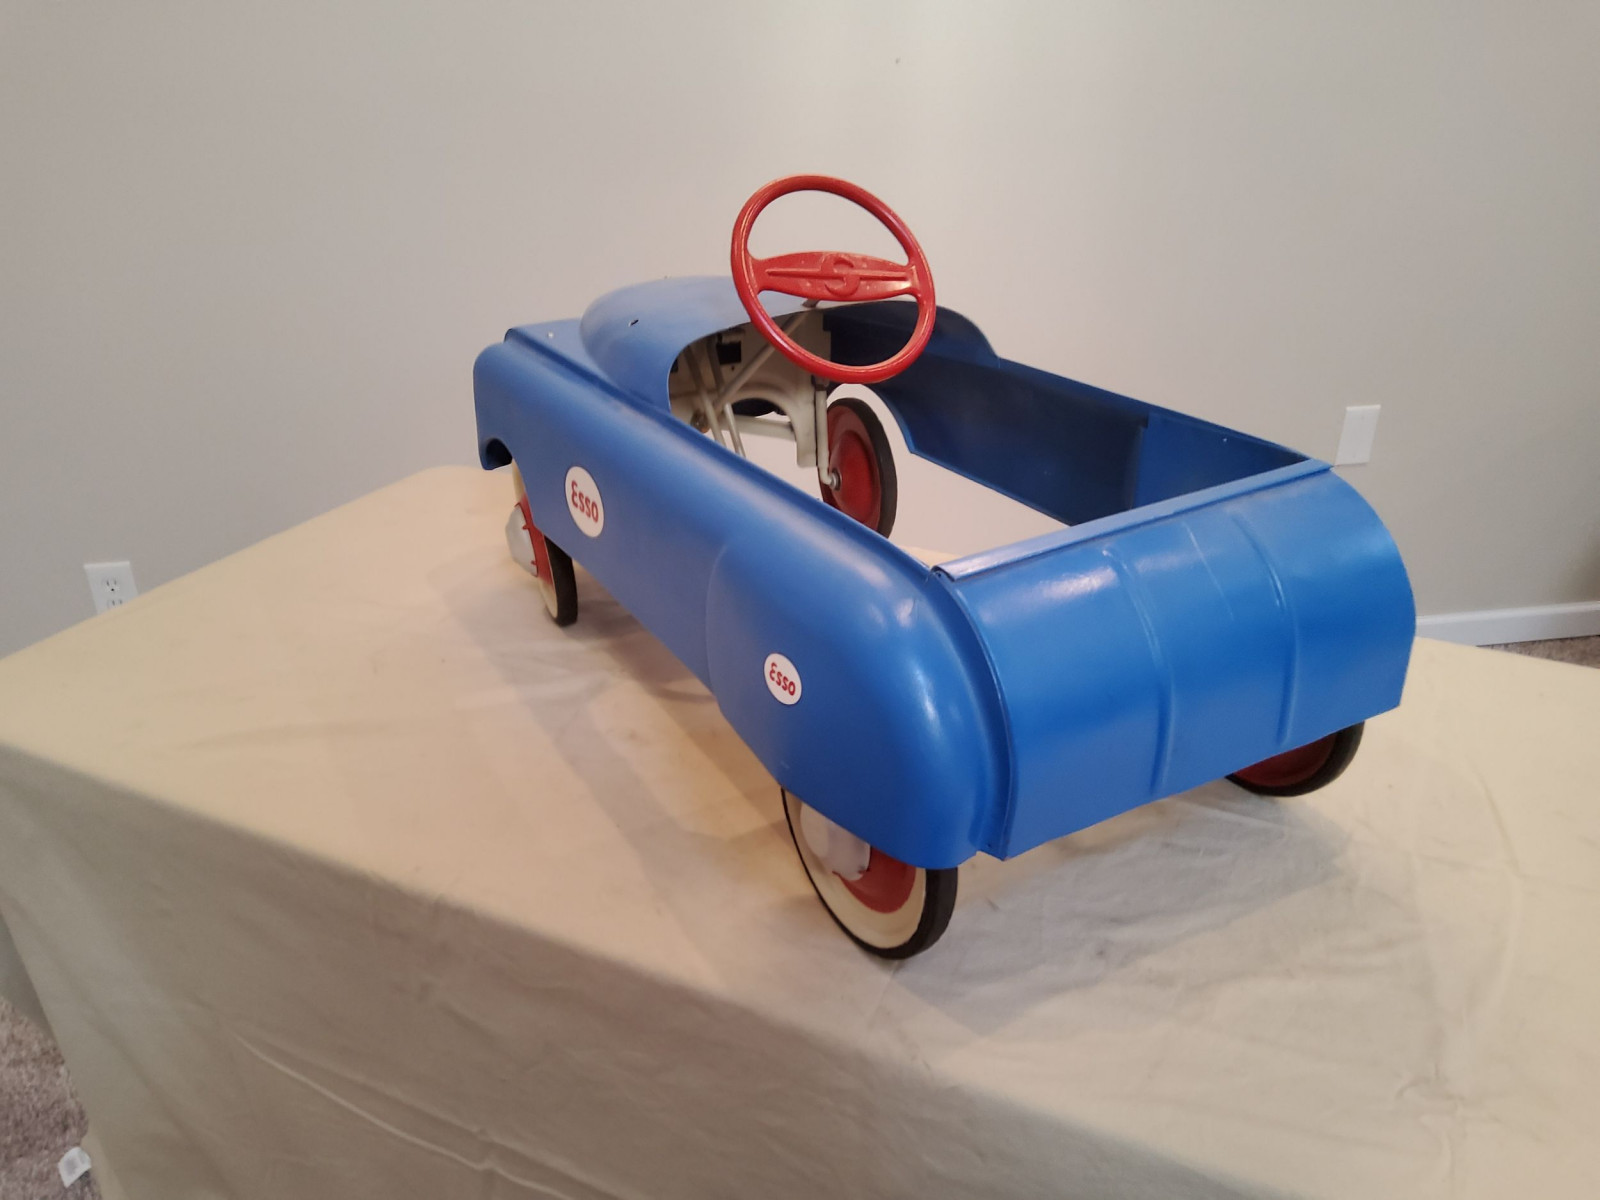 1950 BMC Smooth Side ESSO theme Pedal Car - Image 6